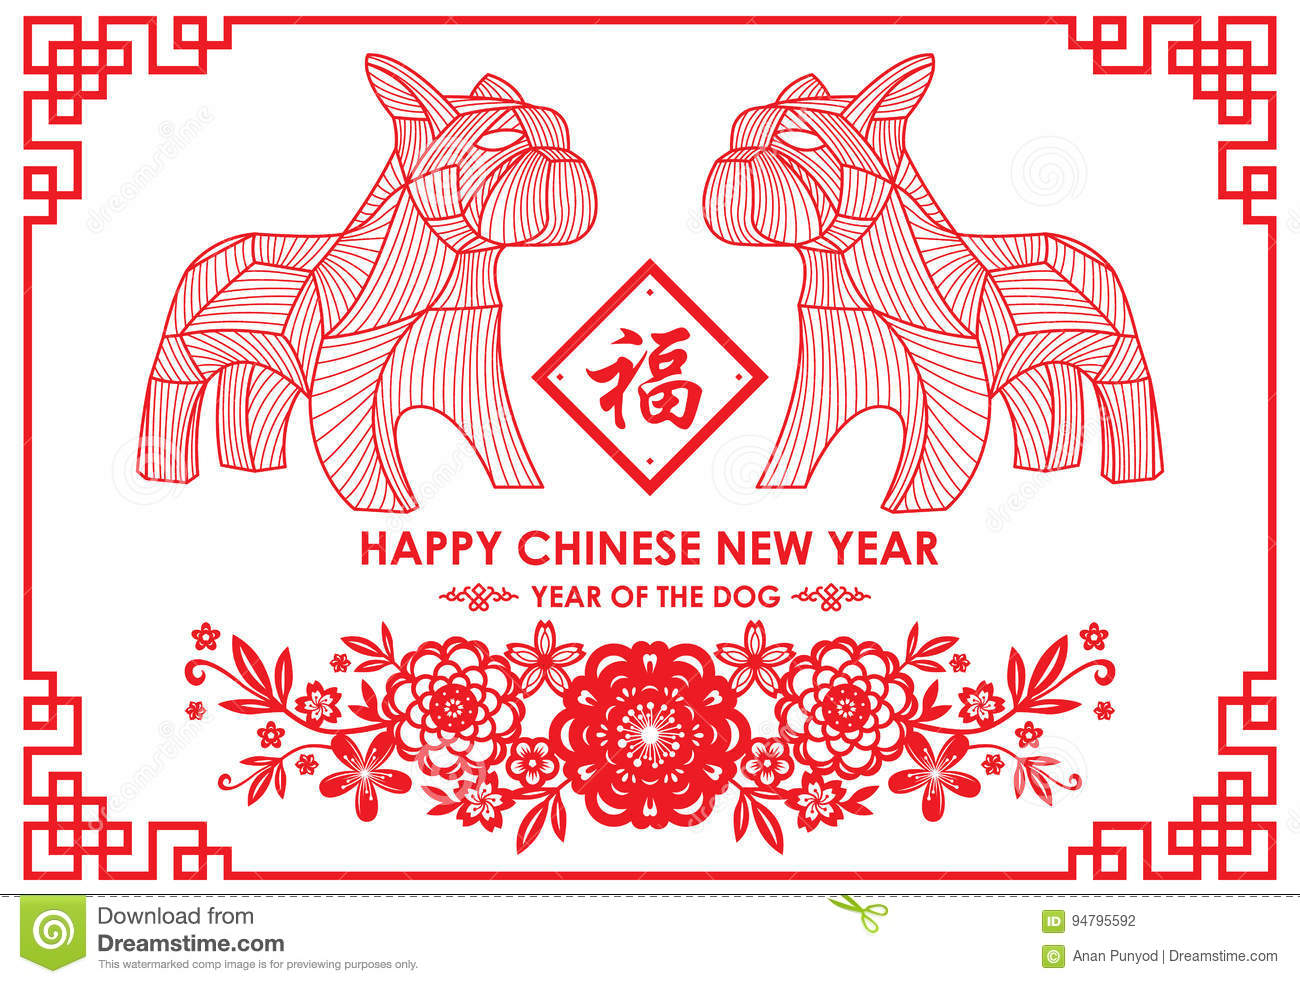 happy chinese new year card with line art dog zodiac and flowers paper cut on white